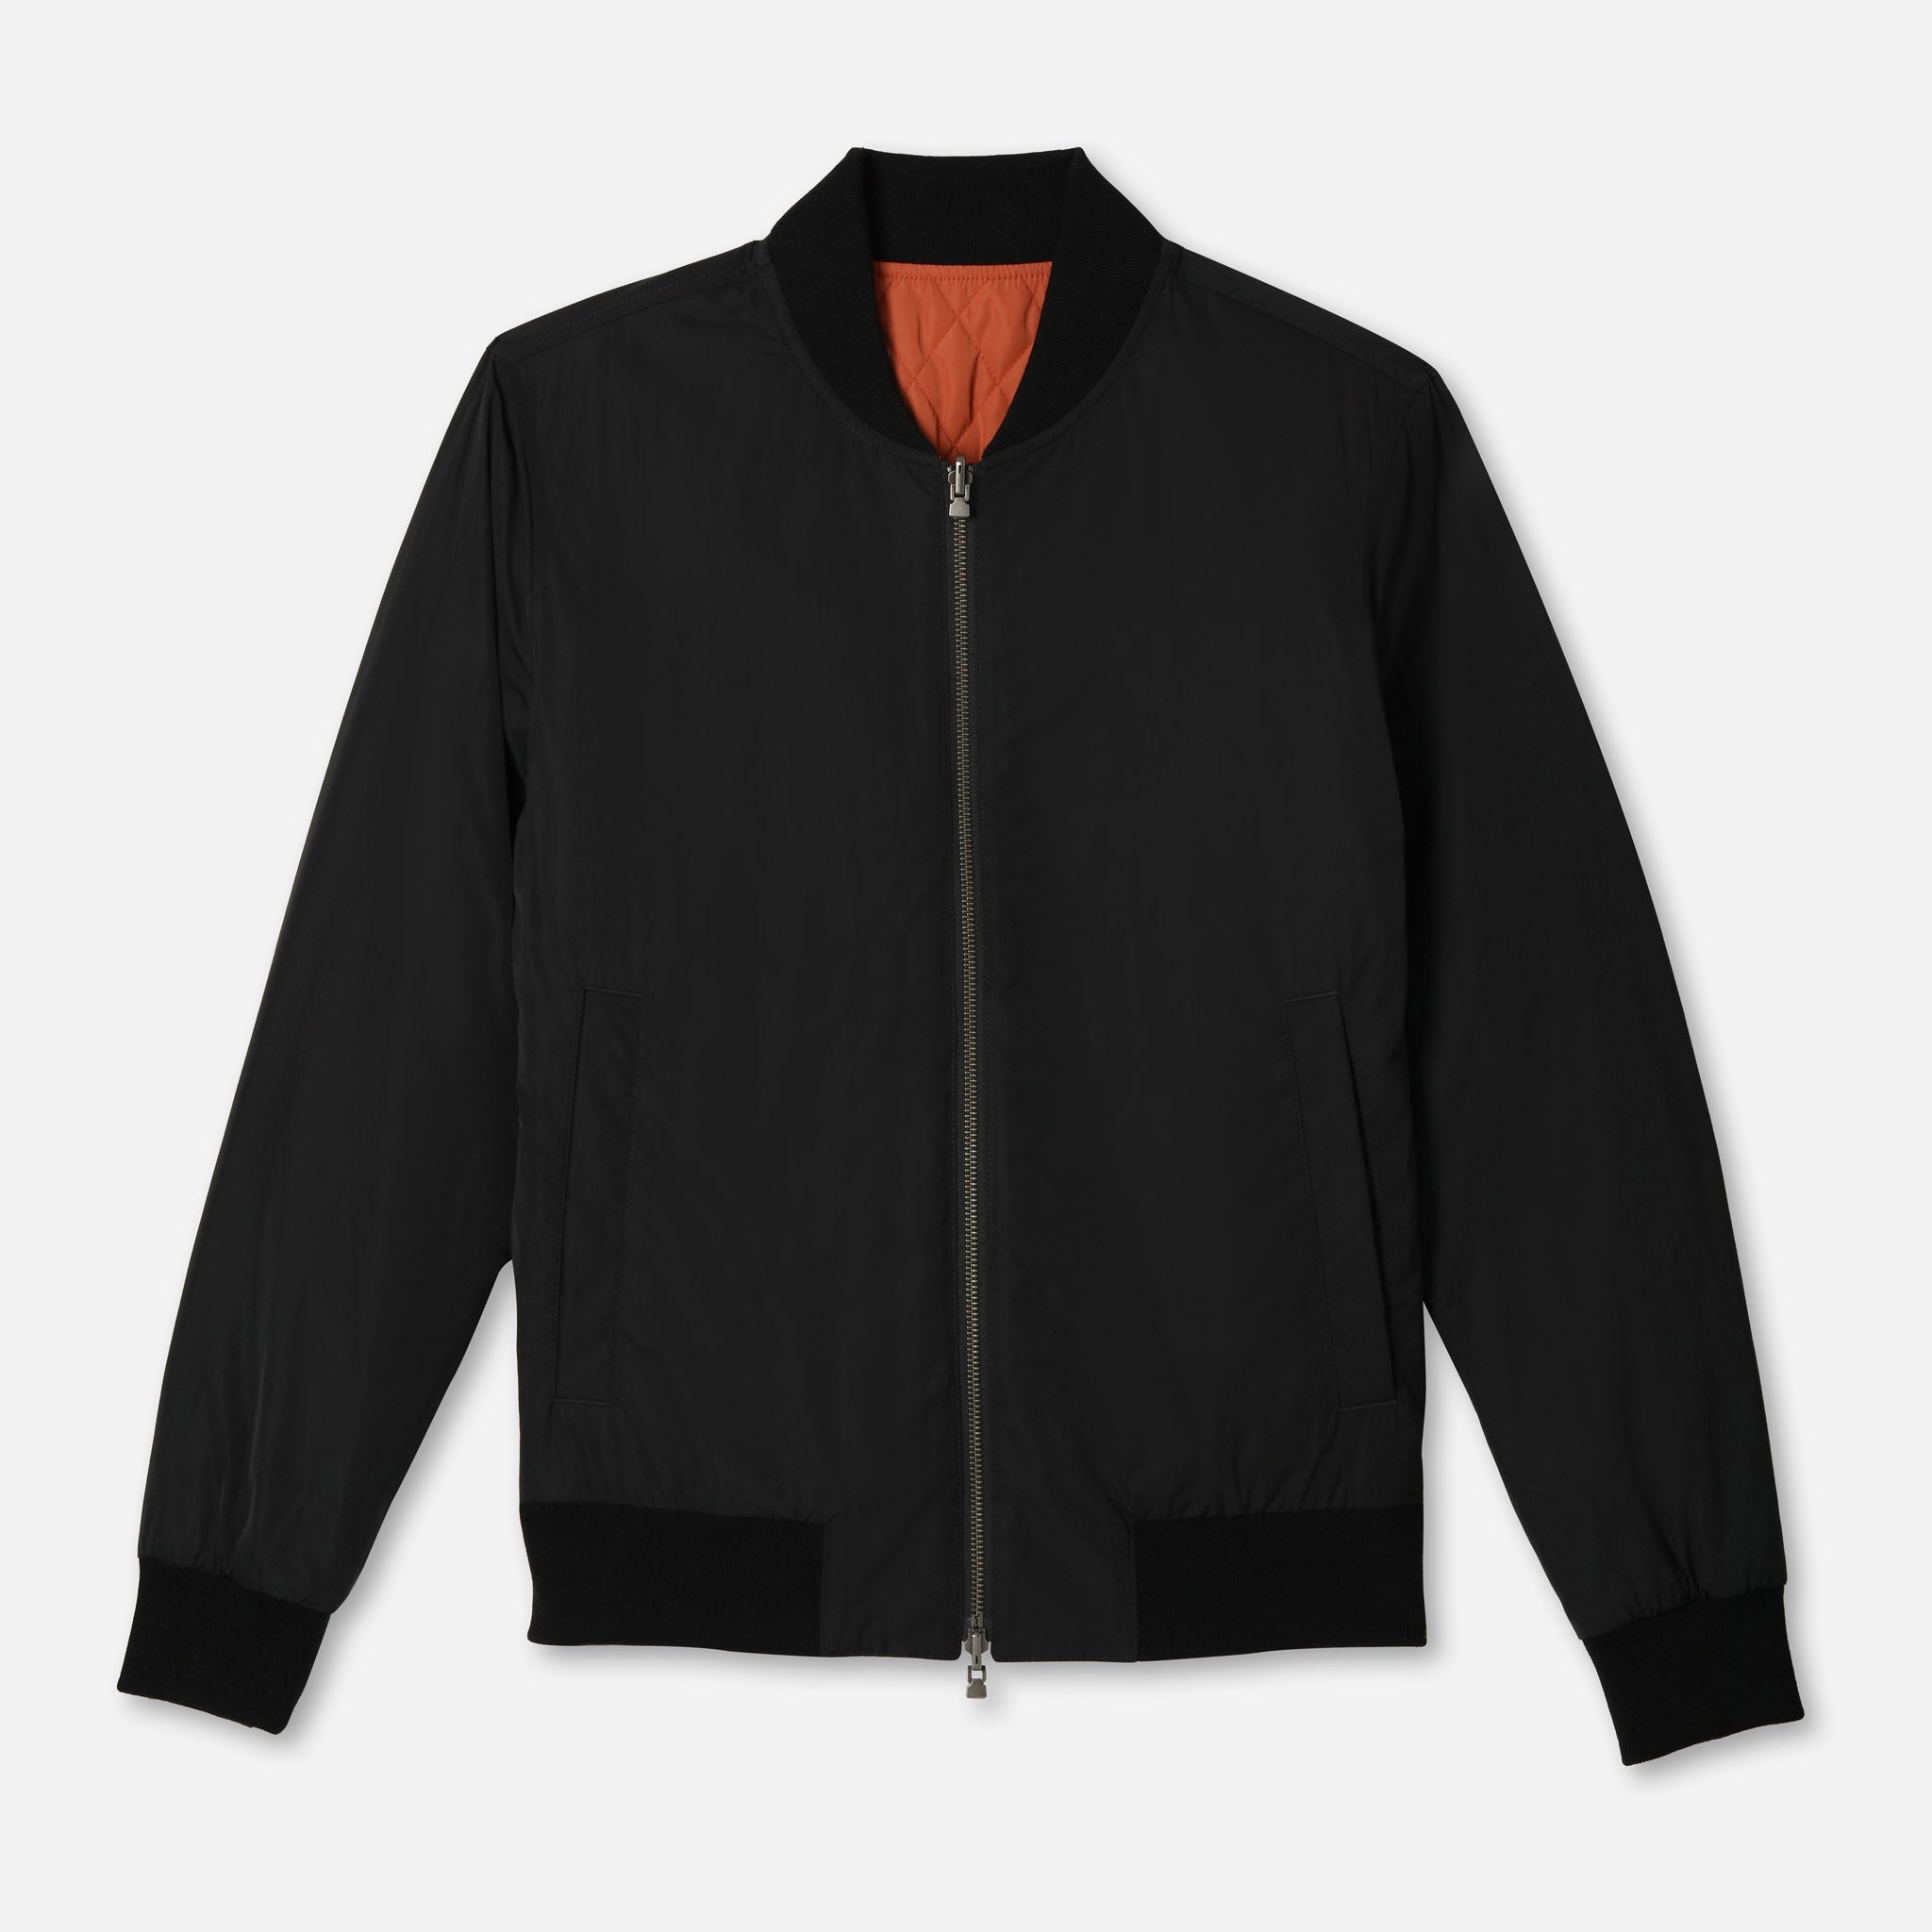 Mitchell Technical in Black/Orange